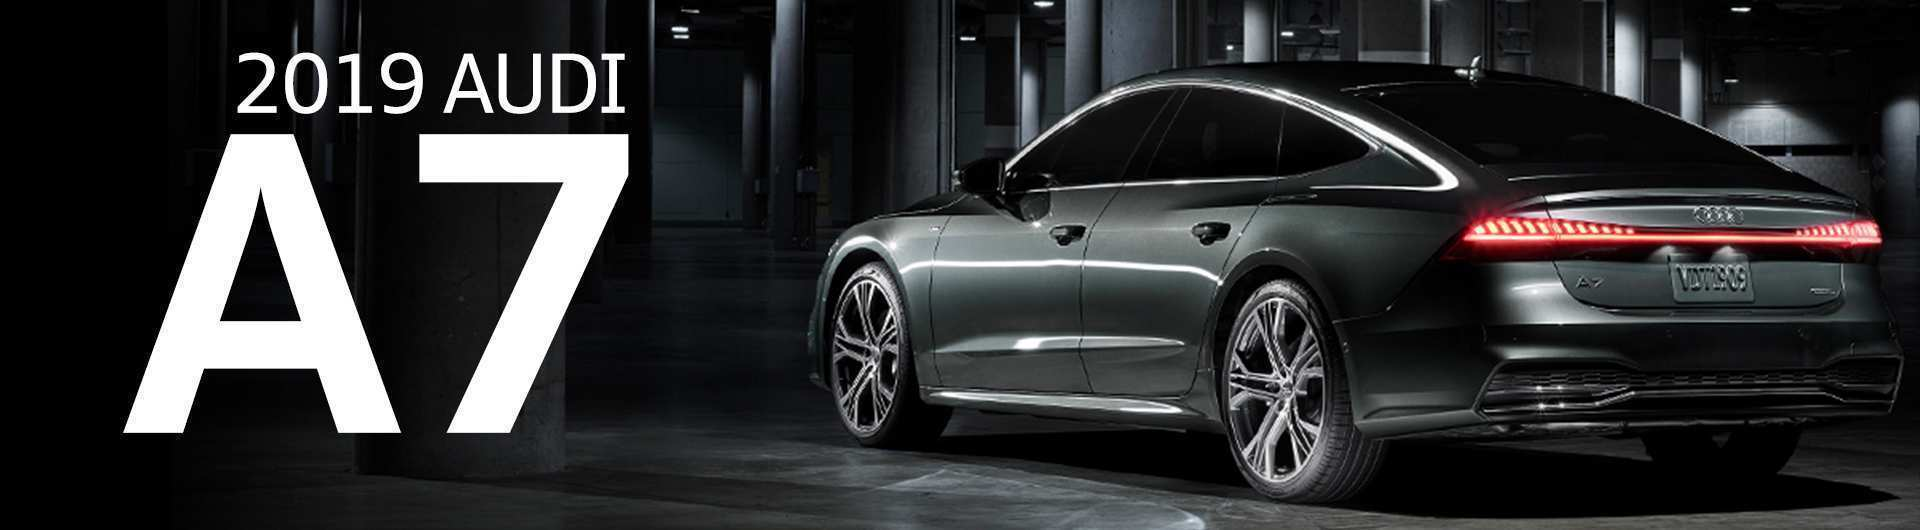 61 All New 2019 All Audi A7 Release